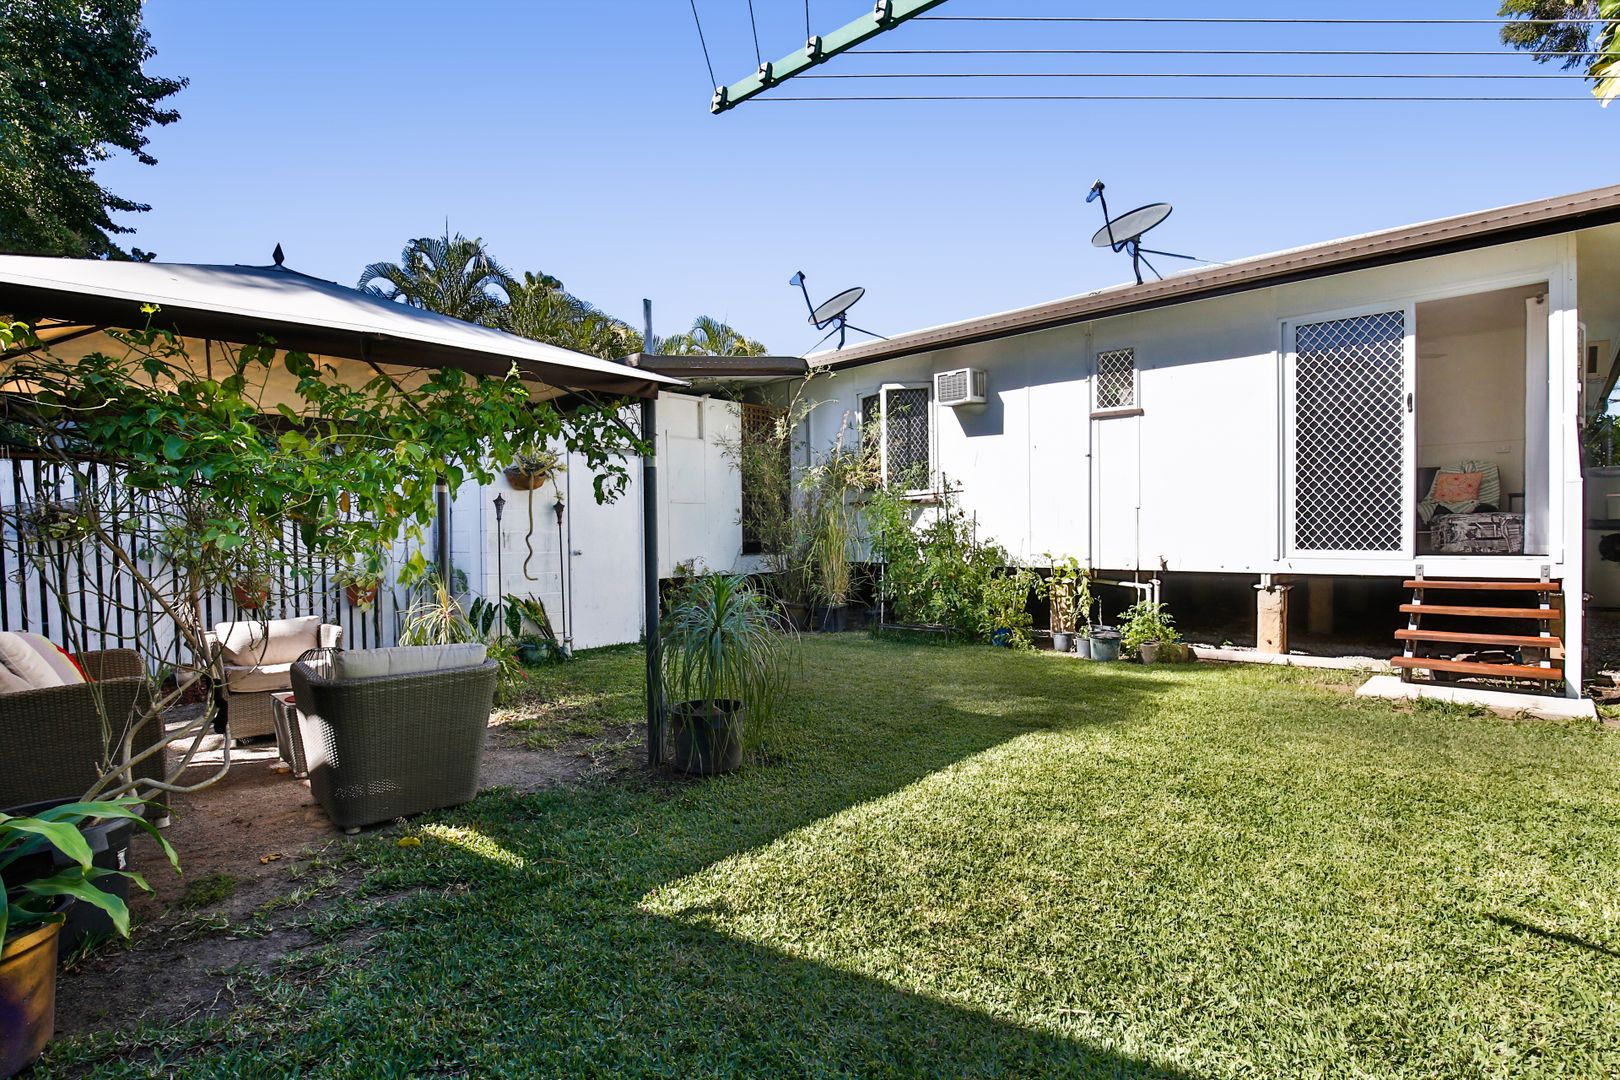 3/69 Ackers Street, Hermit Park QLD 4812, Image 0